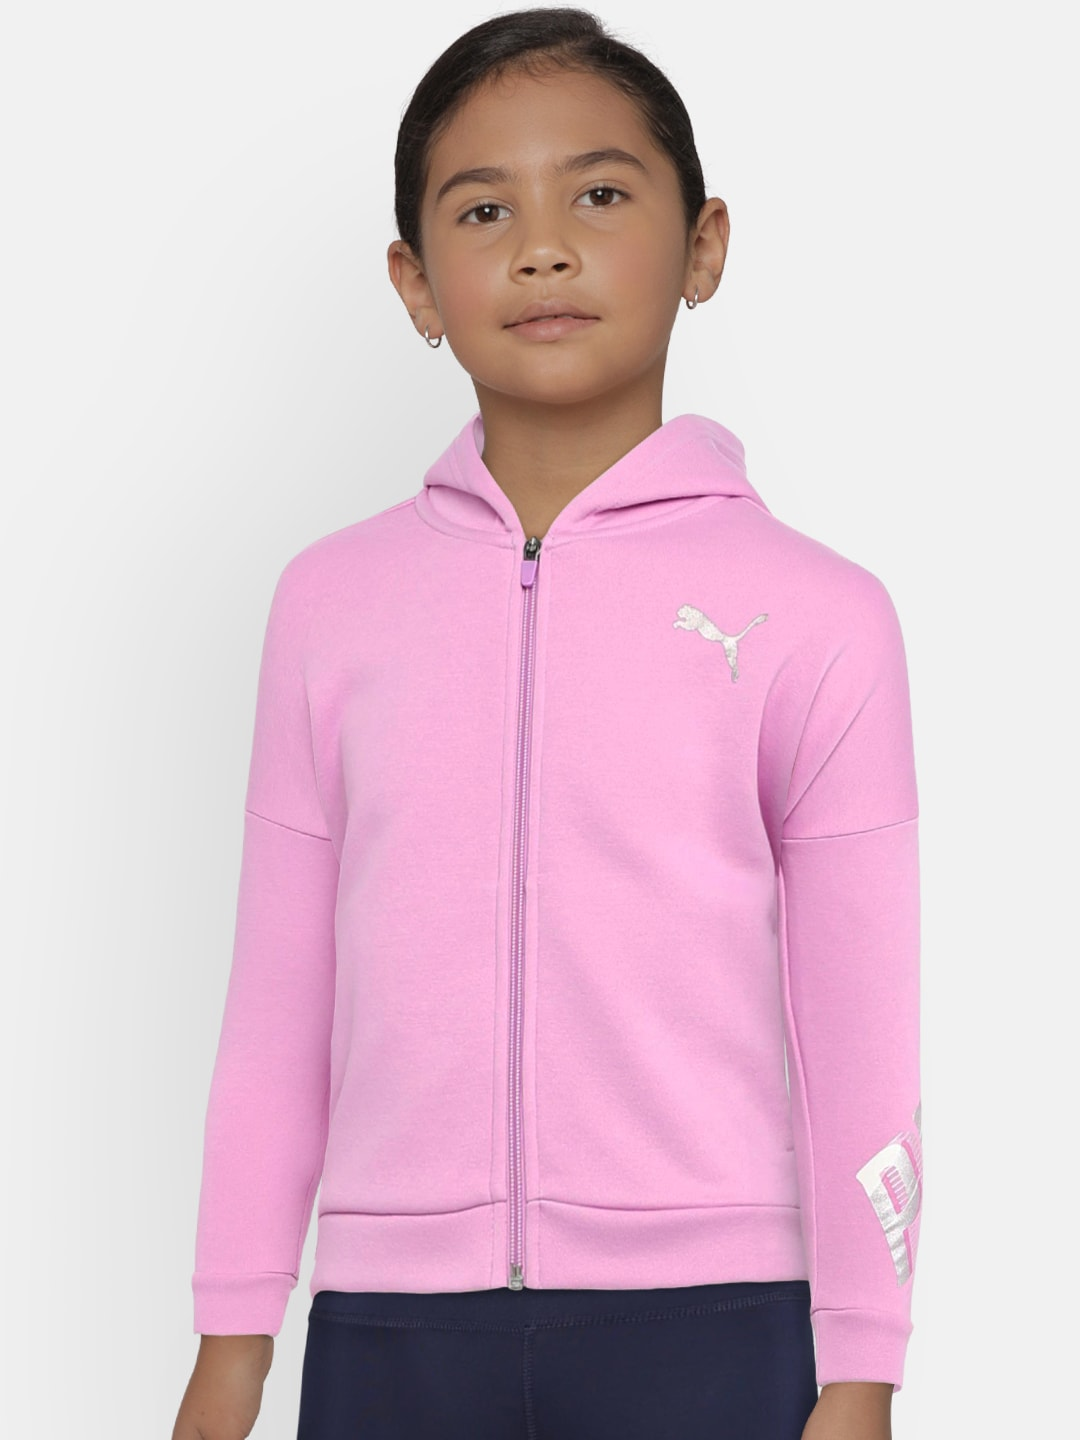 649cb45370f0 Kids Jackets - Buy Jacket for Kids Online in India at Myntra